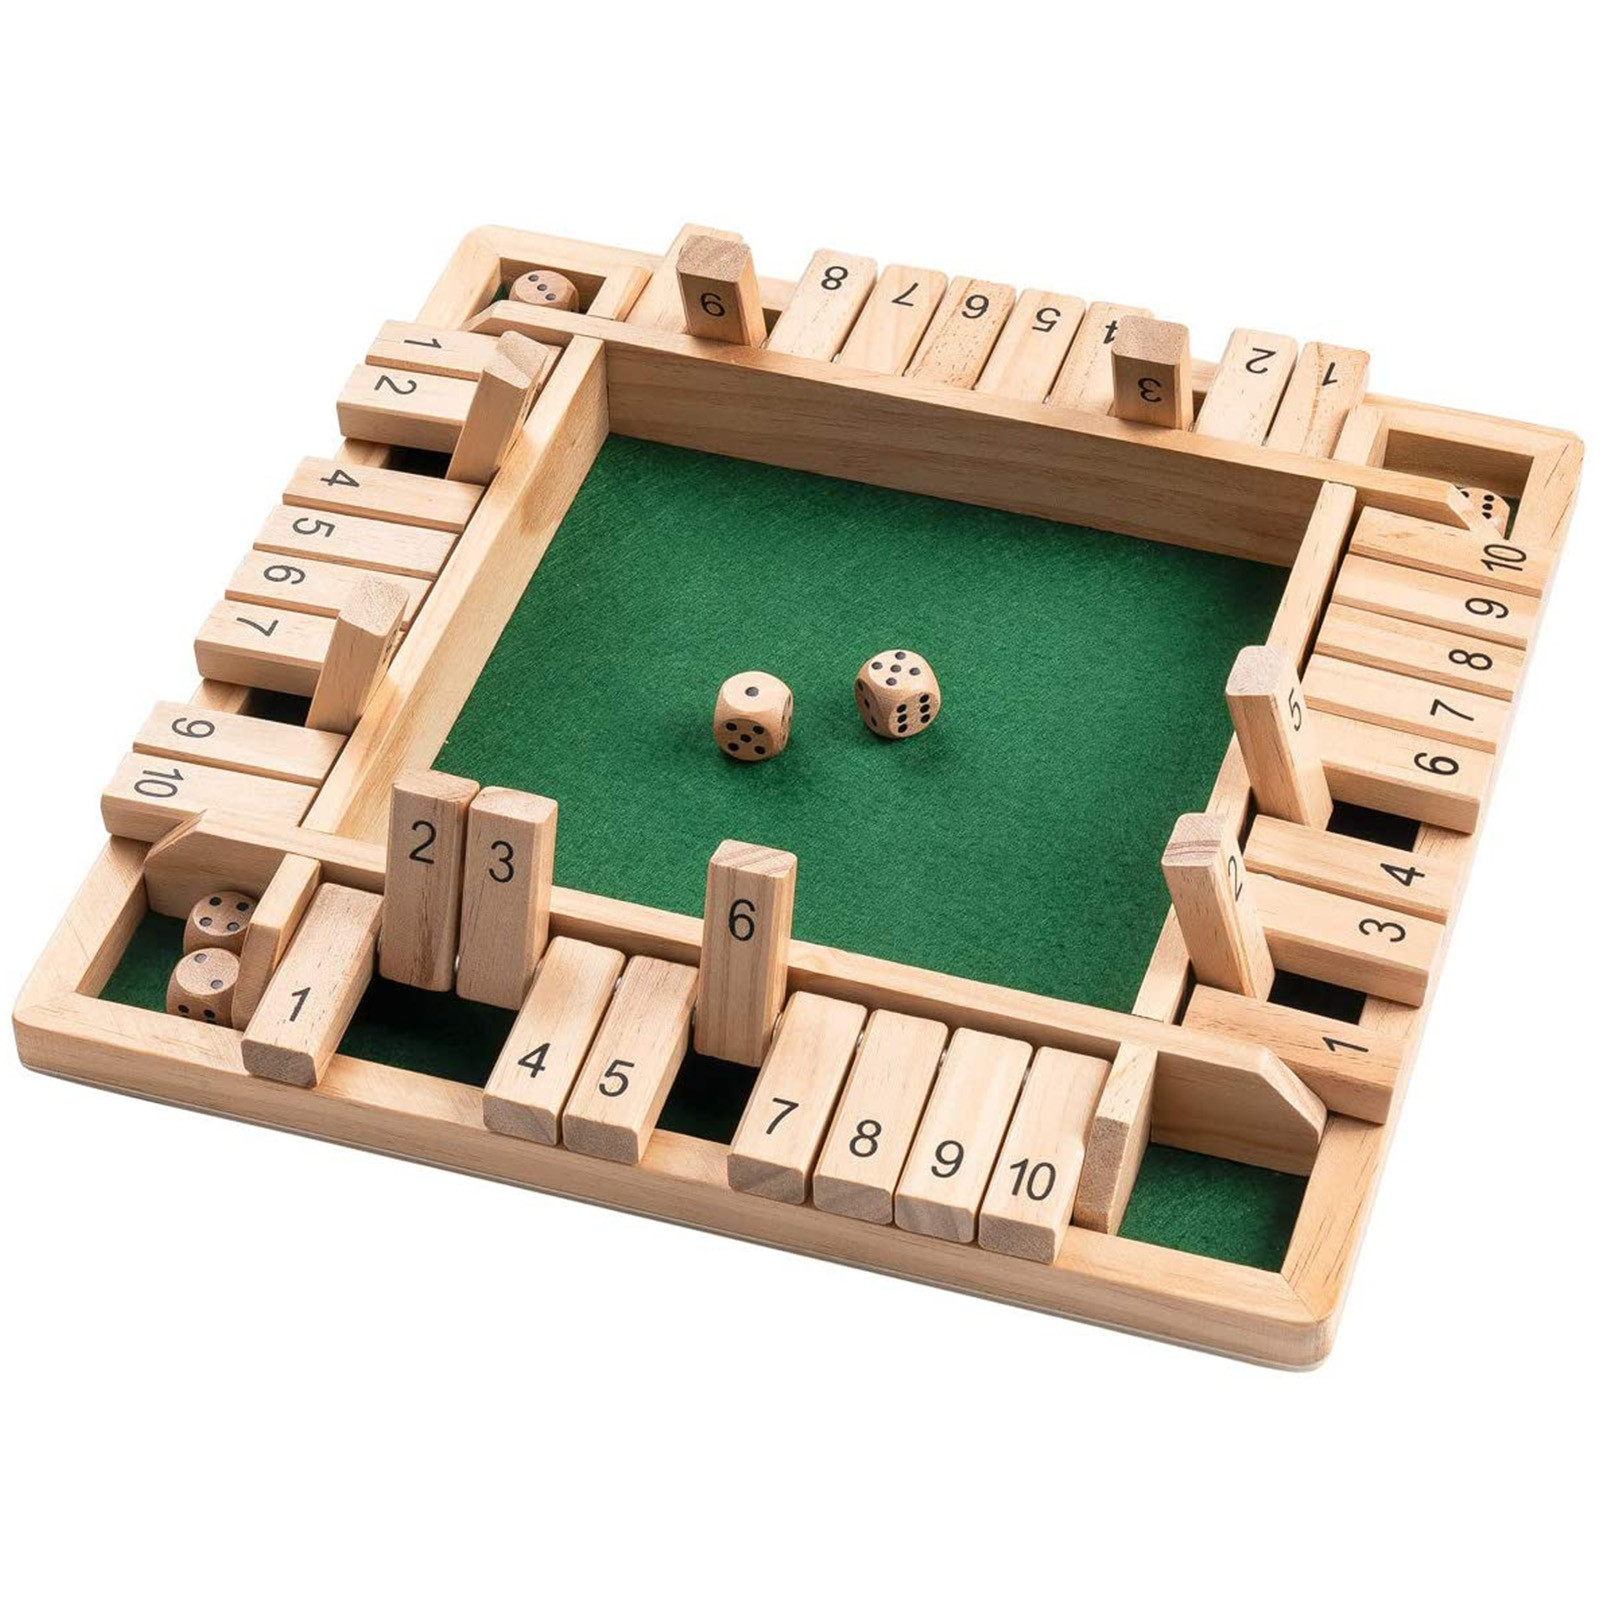 4 Sided 10 Numbers Board Game Wooden Shut The Box Game Family Party Club Ktv Drinking Game For Kids And Adults Educational Toys 2